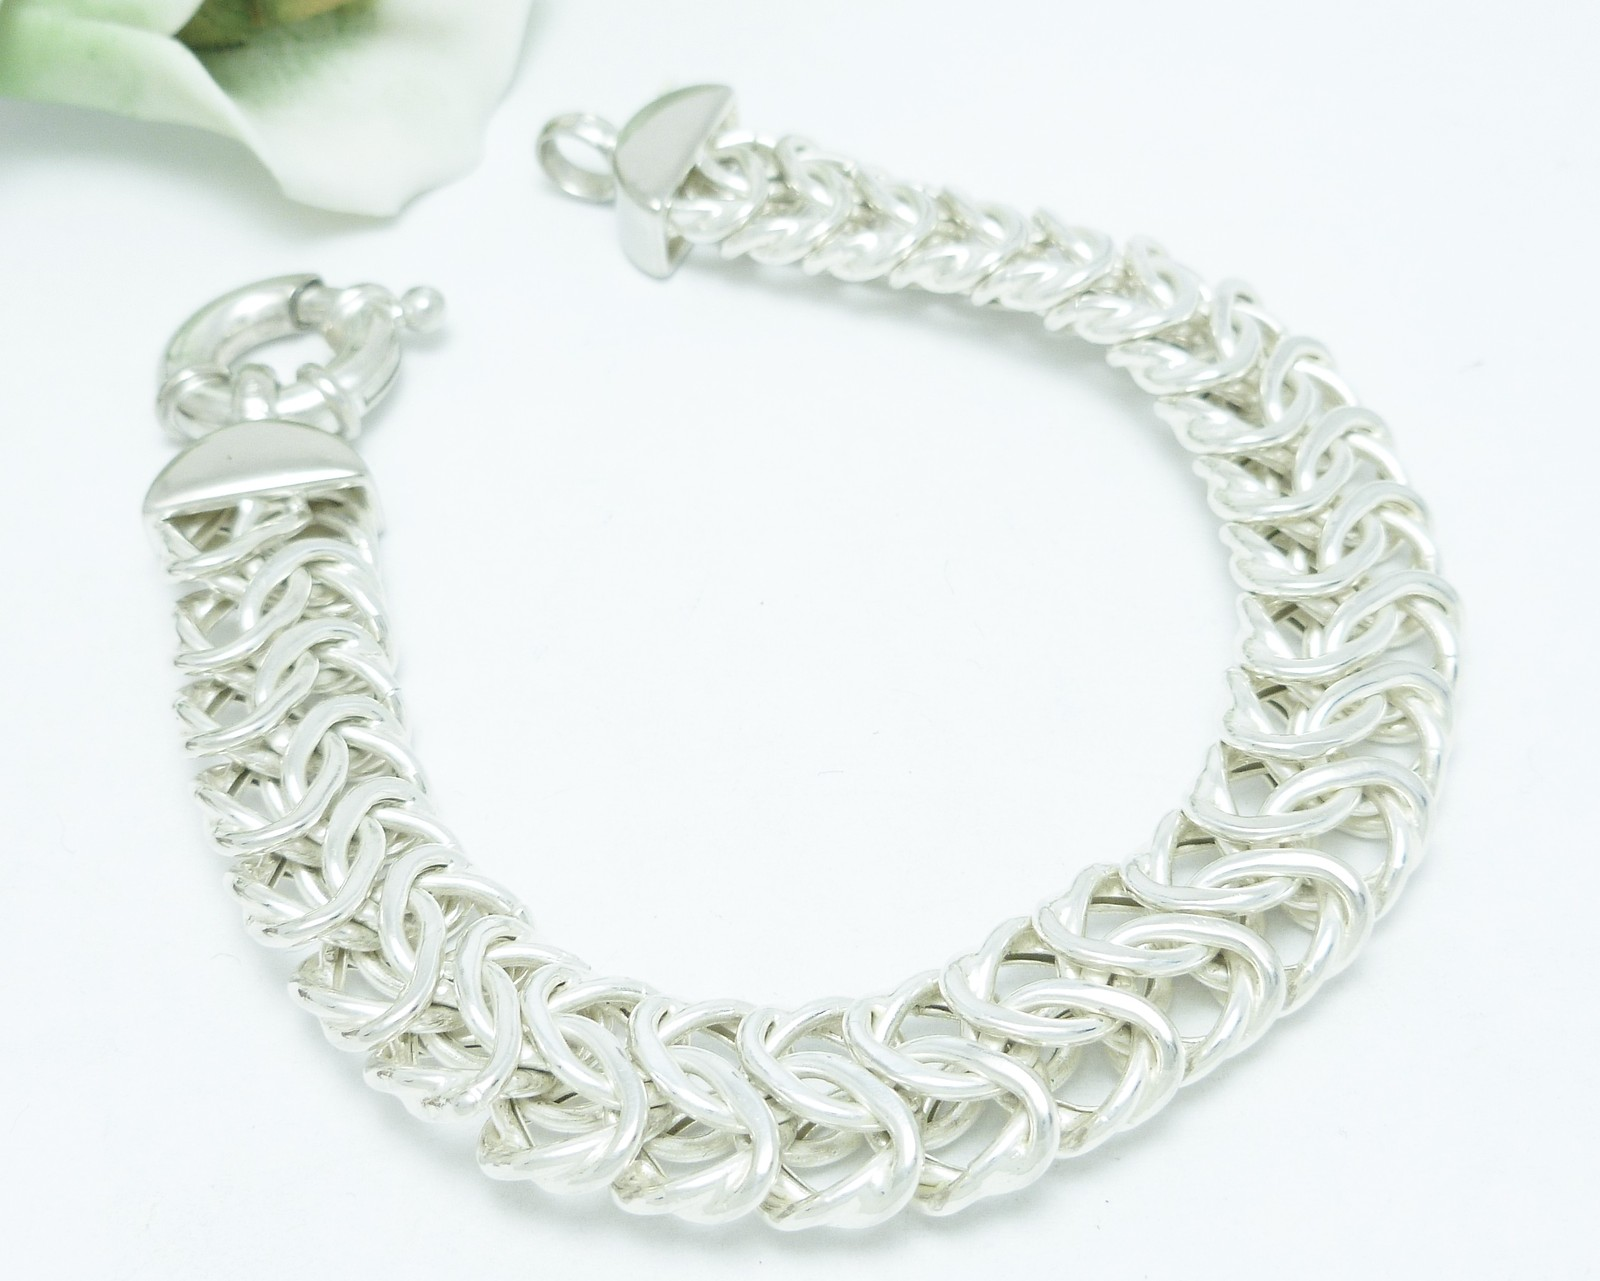 Sterling Silver 7.5 inch Fancy Woven Bracelet